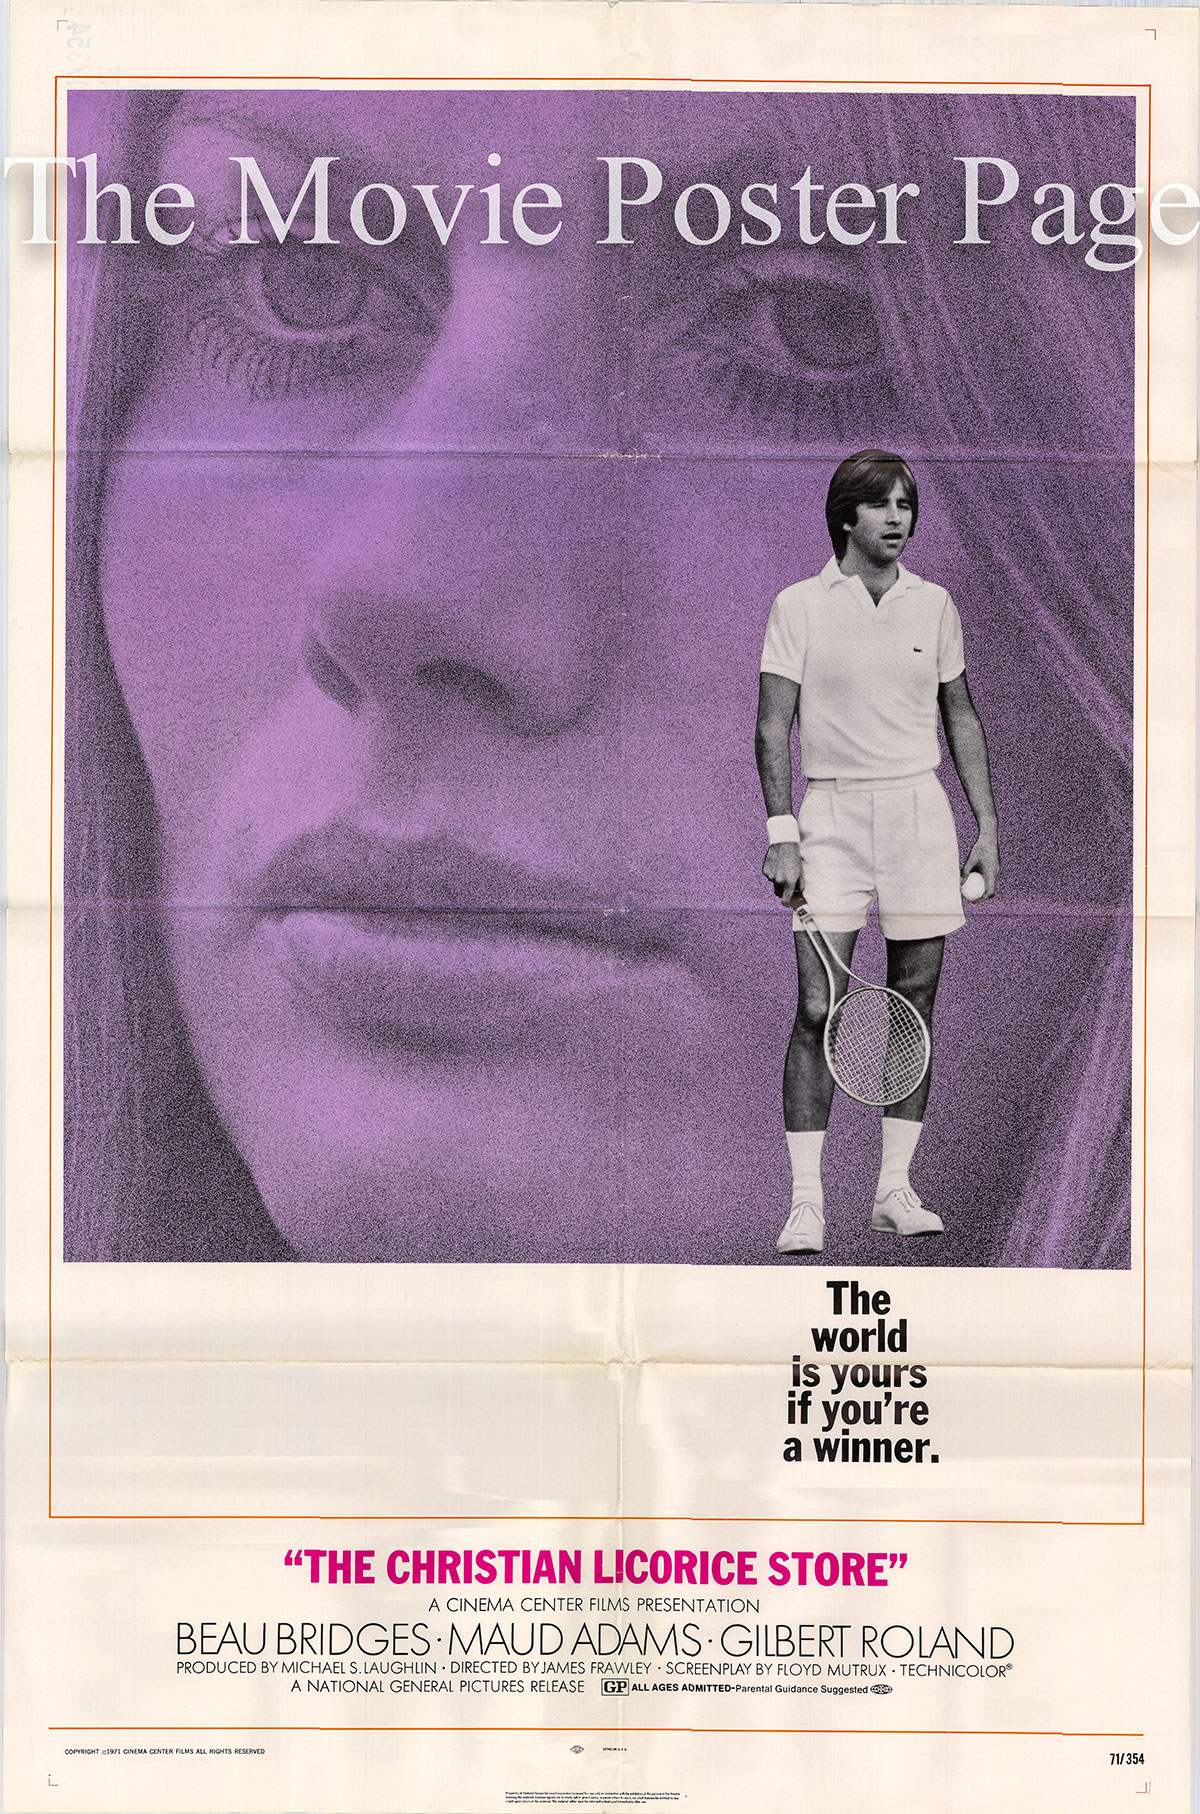 Pictured is a US promotional one-sheet poster for the 1971 James Frawley film The Christian Licorice Store starring Beau Bridges.